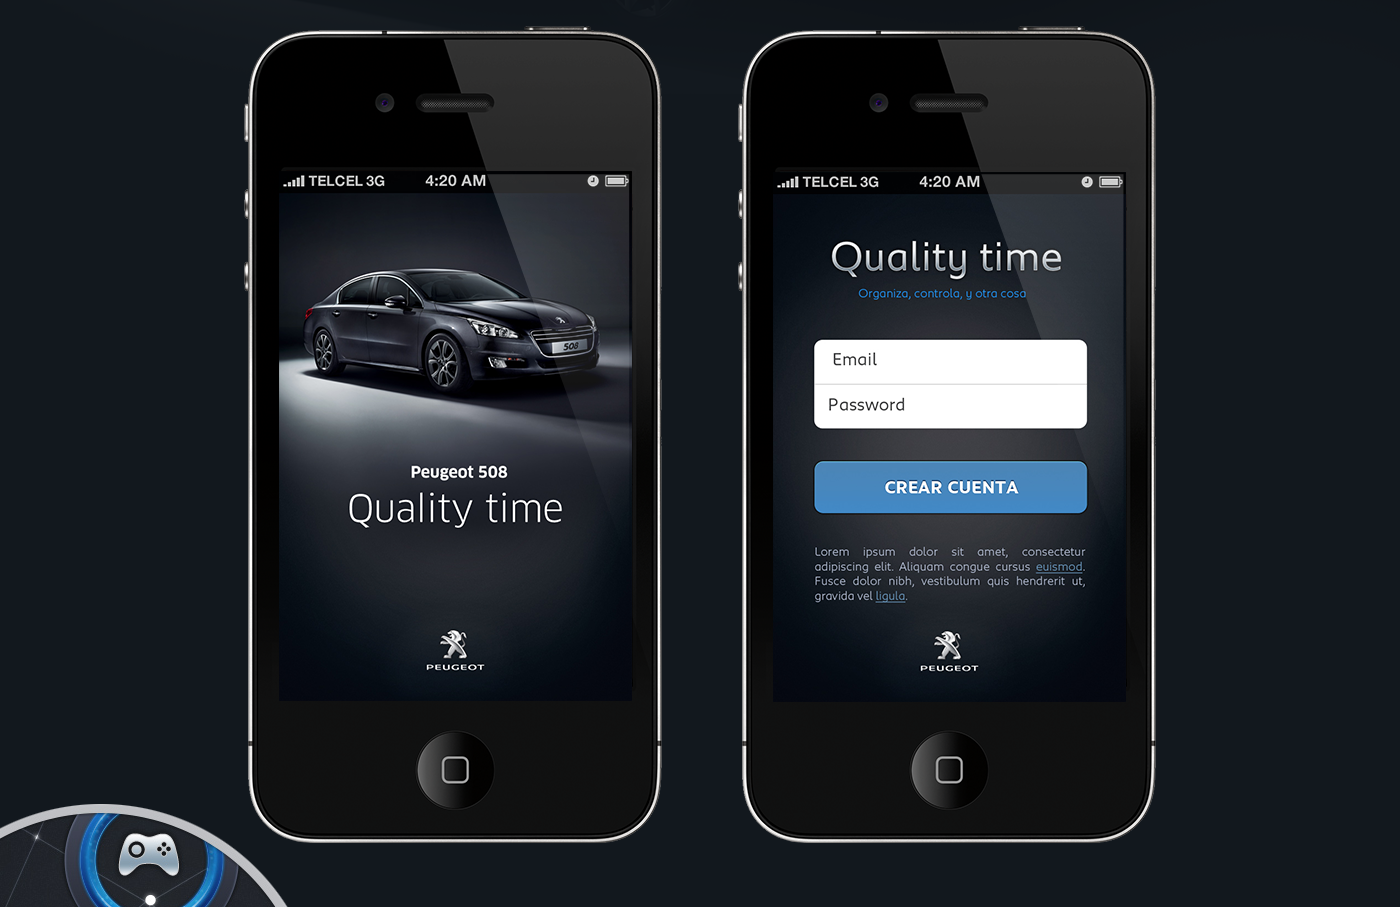 Quality time was a proposal app to measure your daily